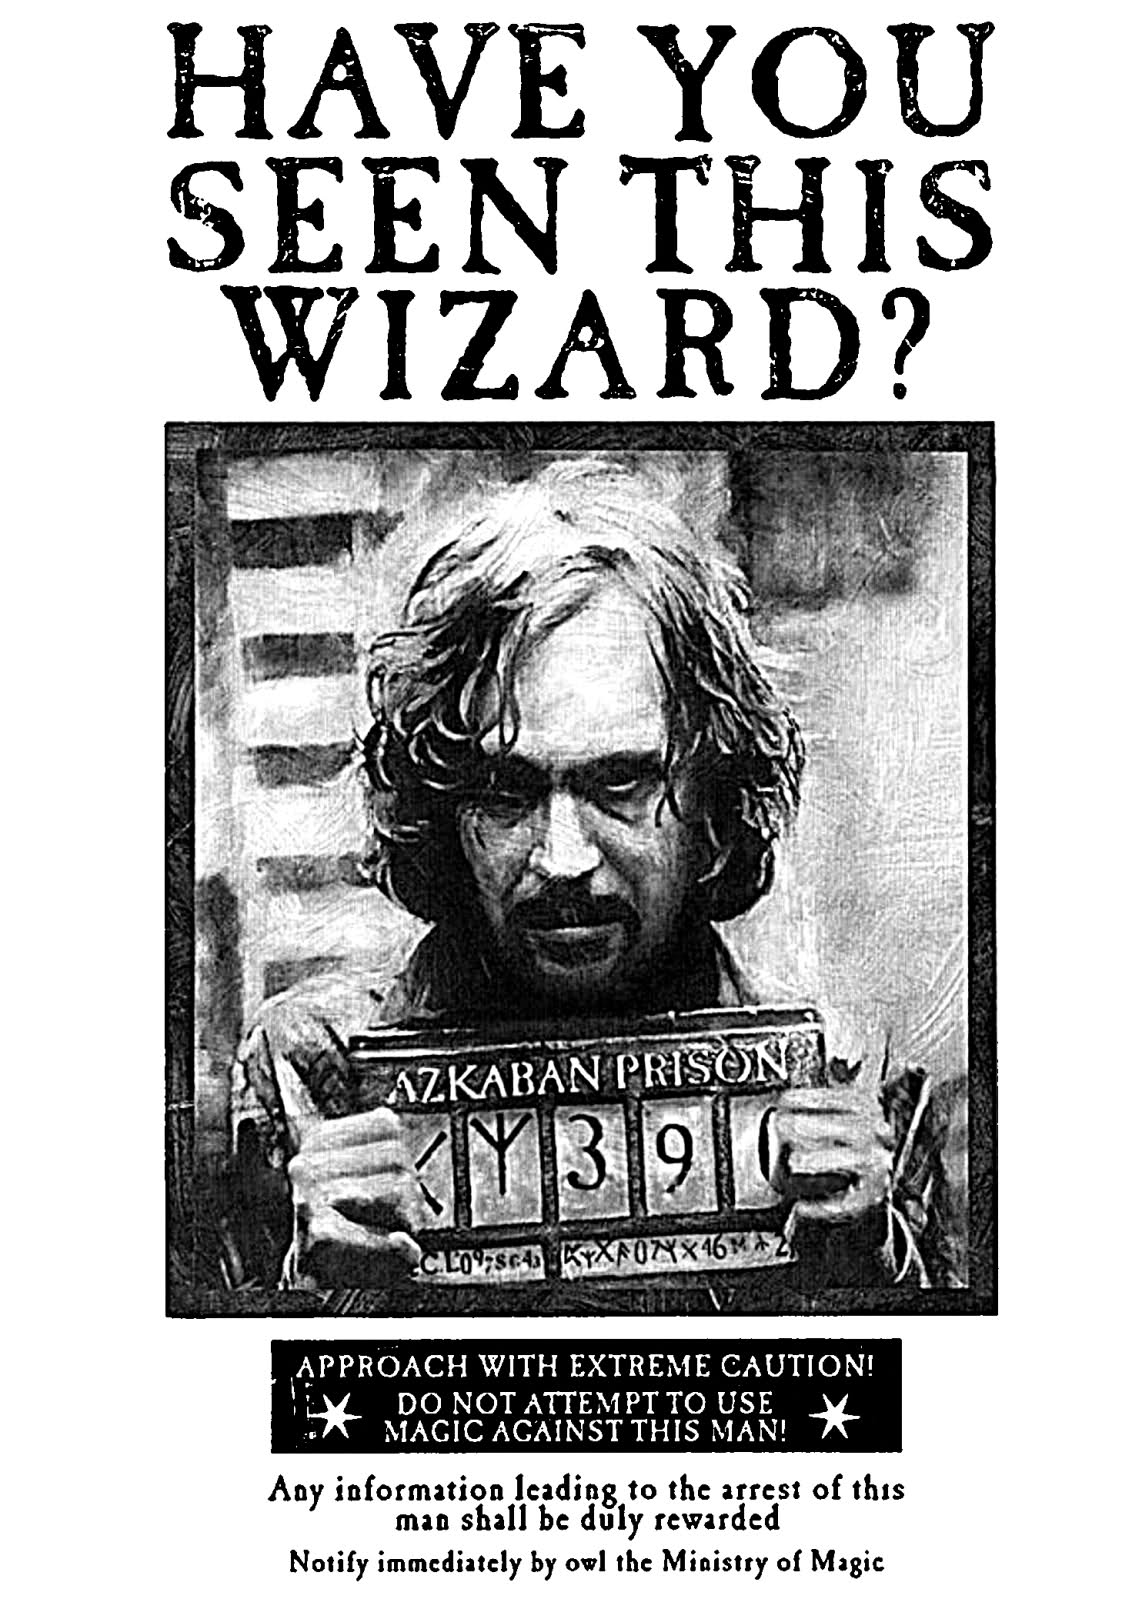 Sirius Black Wanted Poster  Funny Missing Person Poster